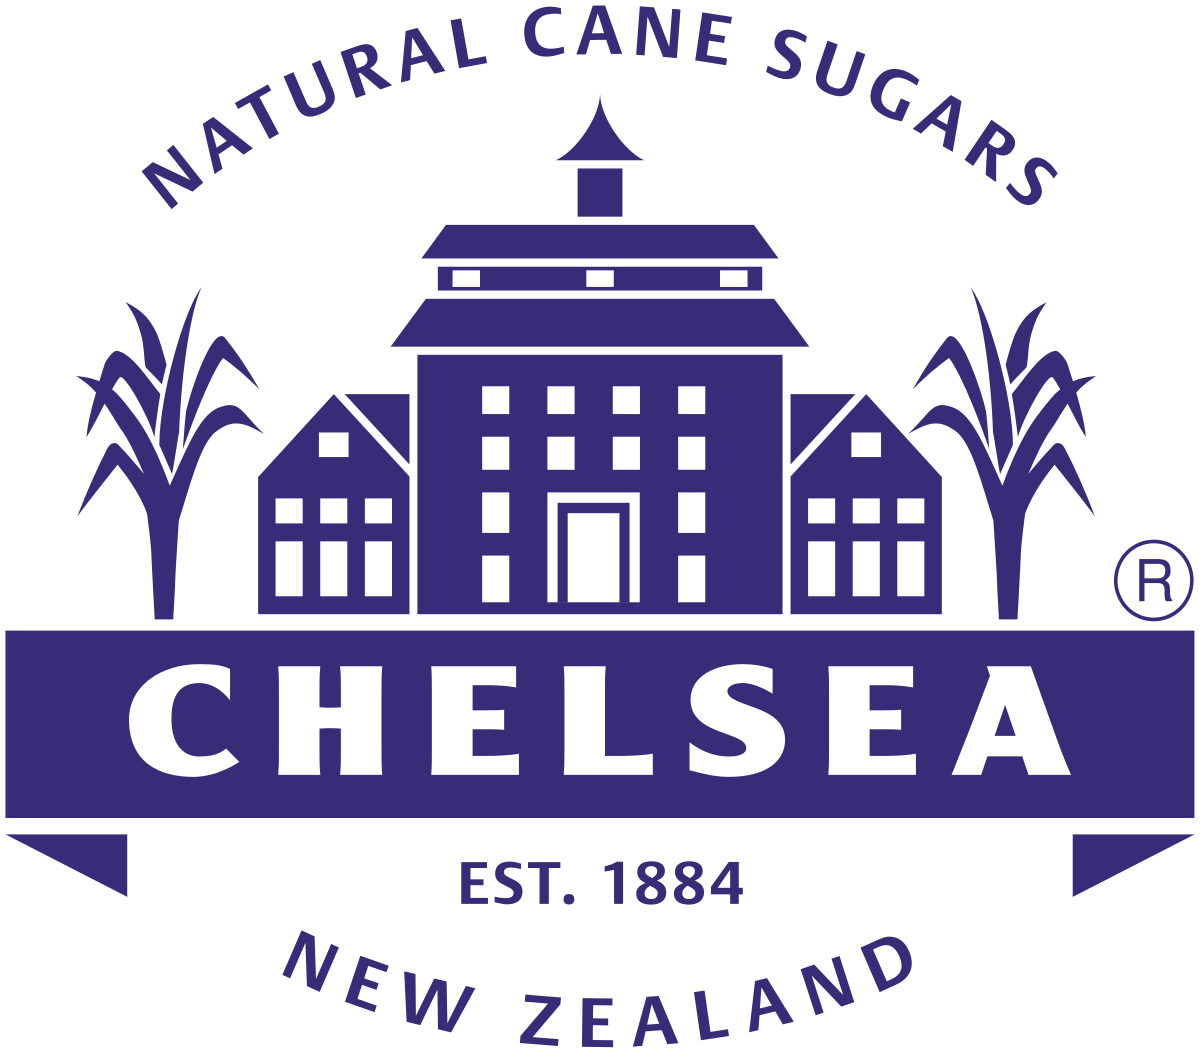 Chelsea refinery wikipedia . Factories clipart sugar industry